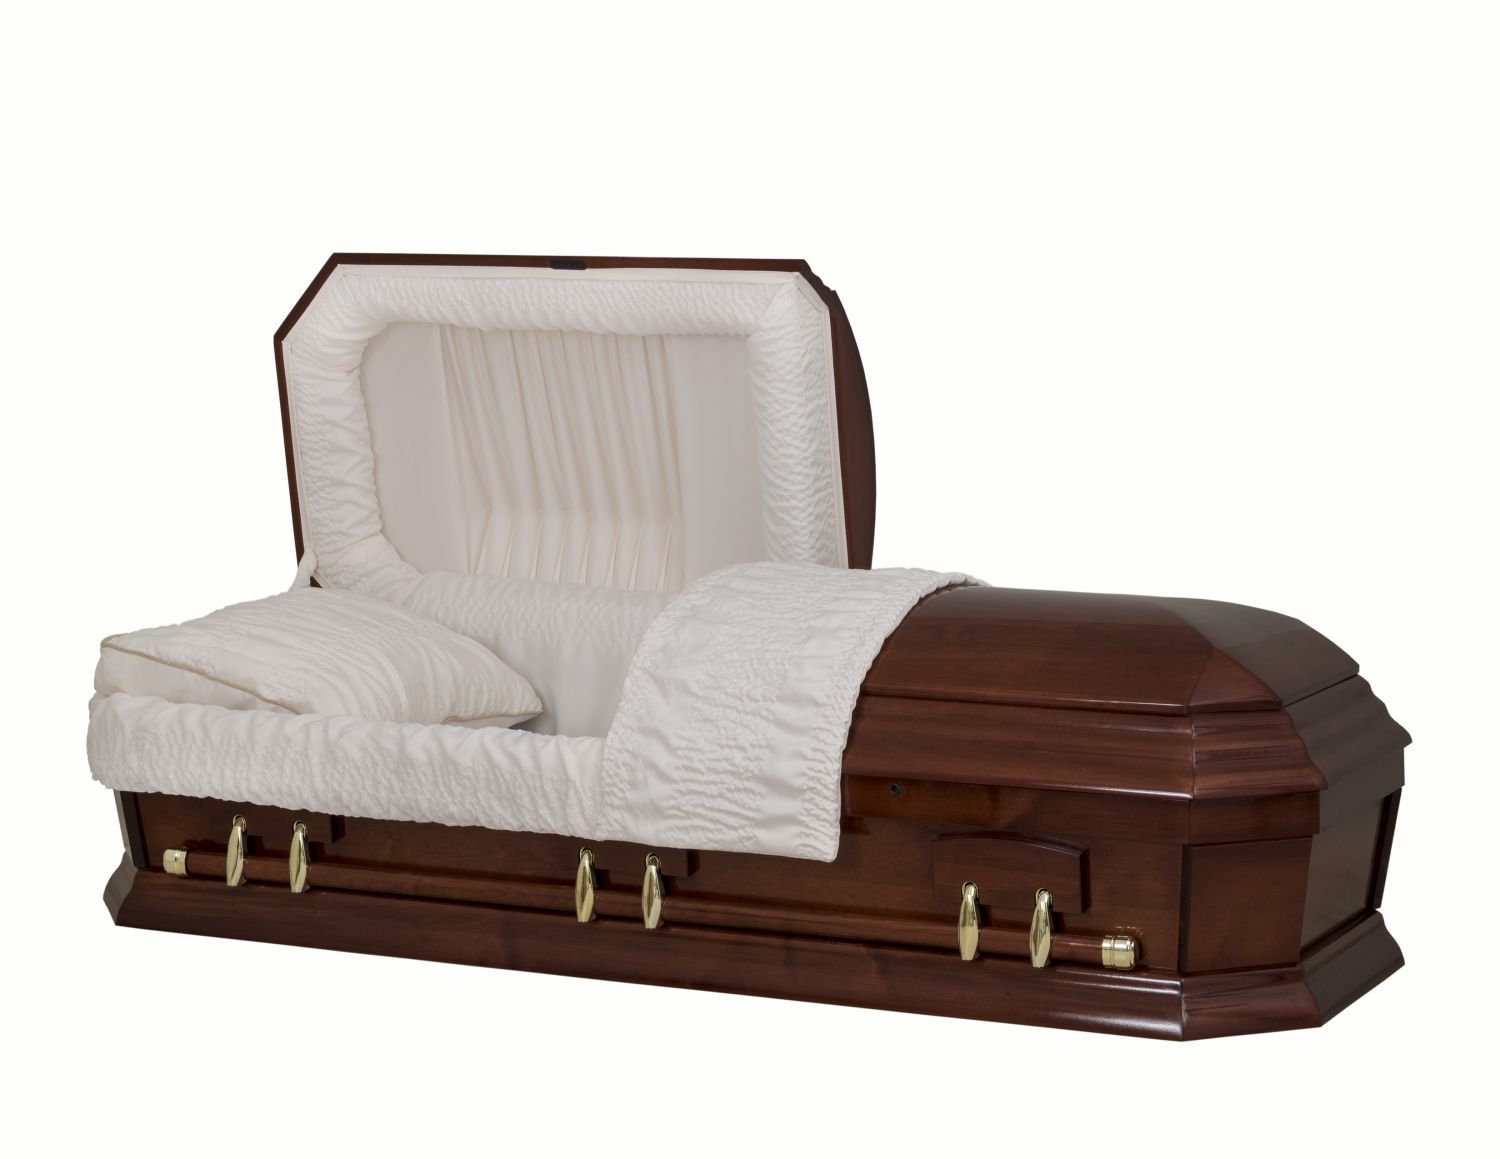 Concept Caskets 28262-00487-N POPLAR CASKET POLISHED  CREPE  CHERRY  MATRESS YES W1260G-1    6 X 0 ANTIQUE GOLD